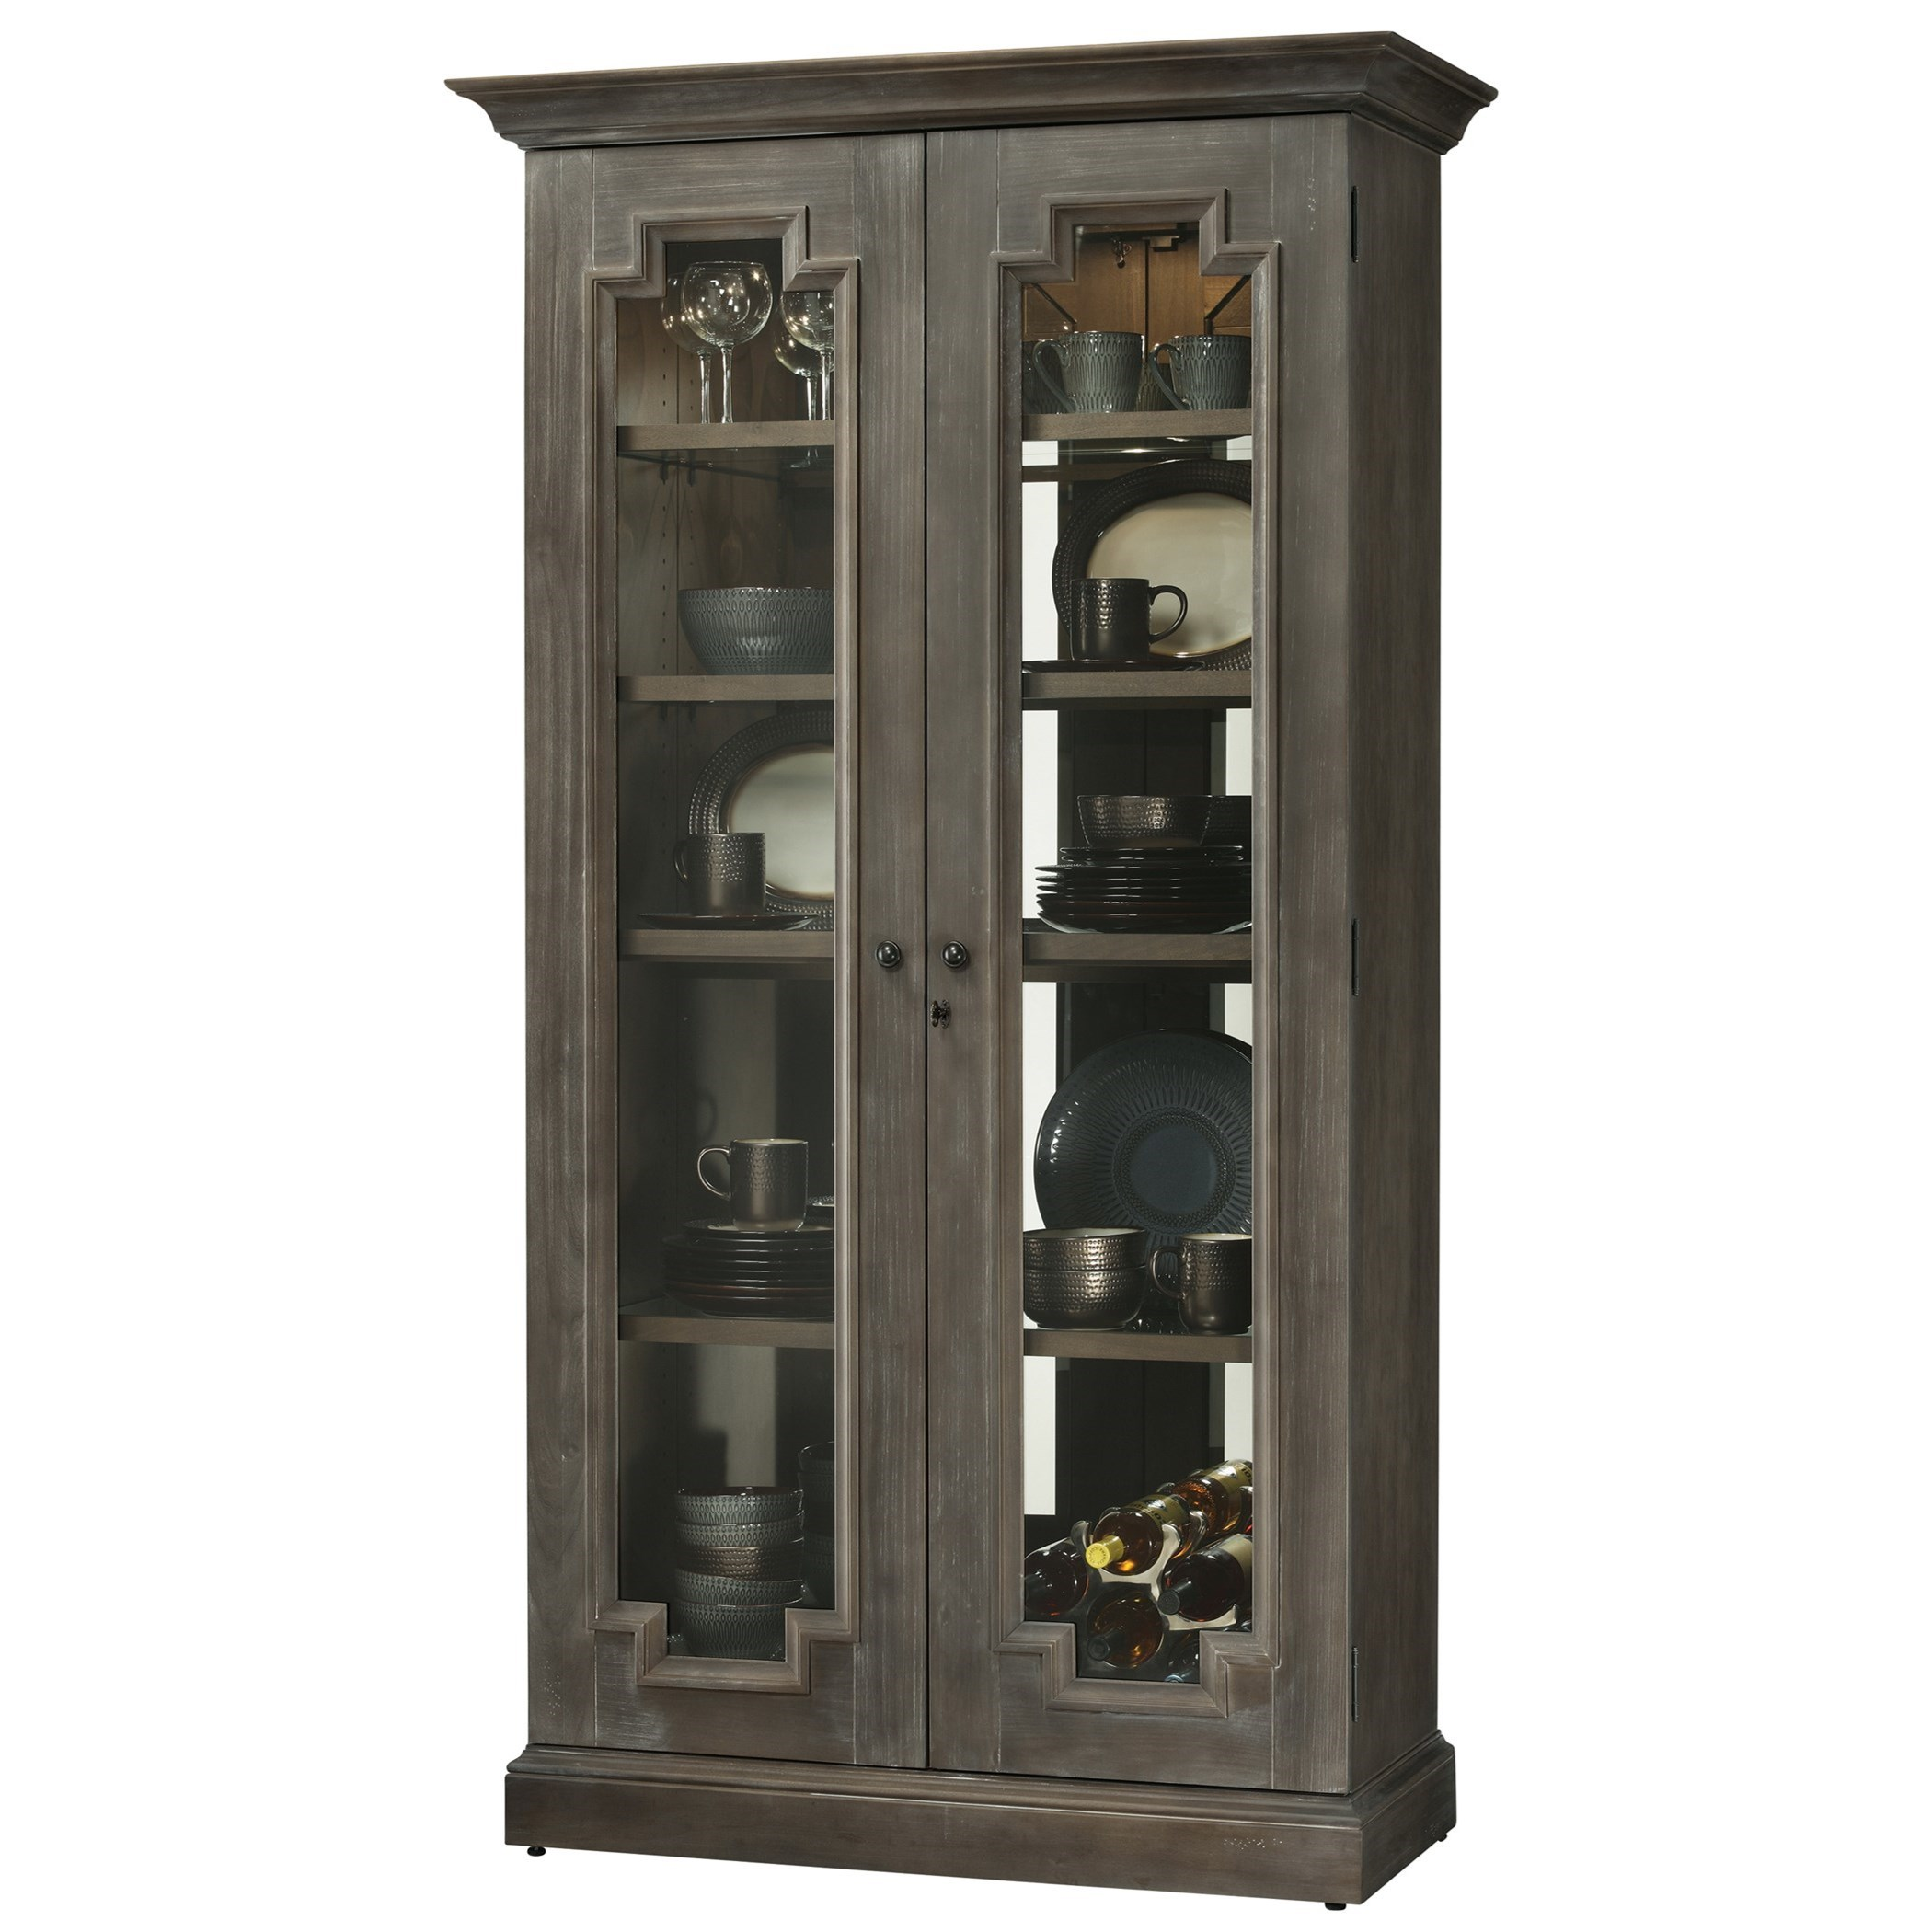 Howard Miller Cabinets Chasman Door Cabinet - Item Number: 670-010